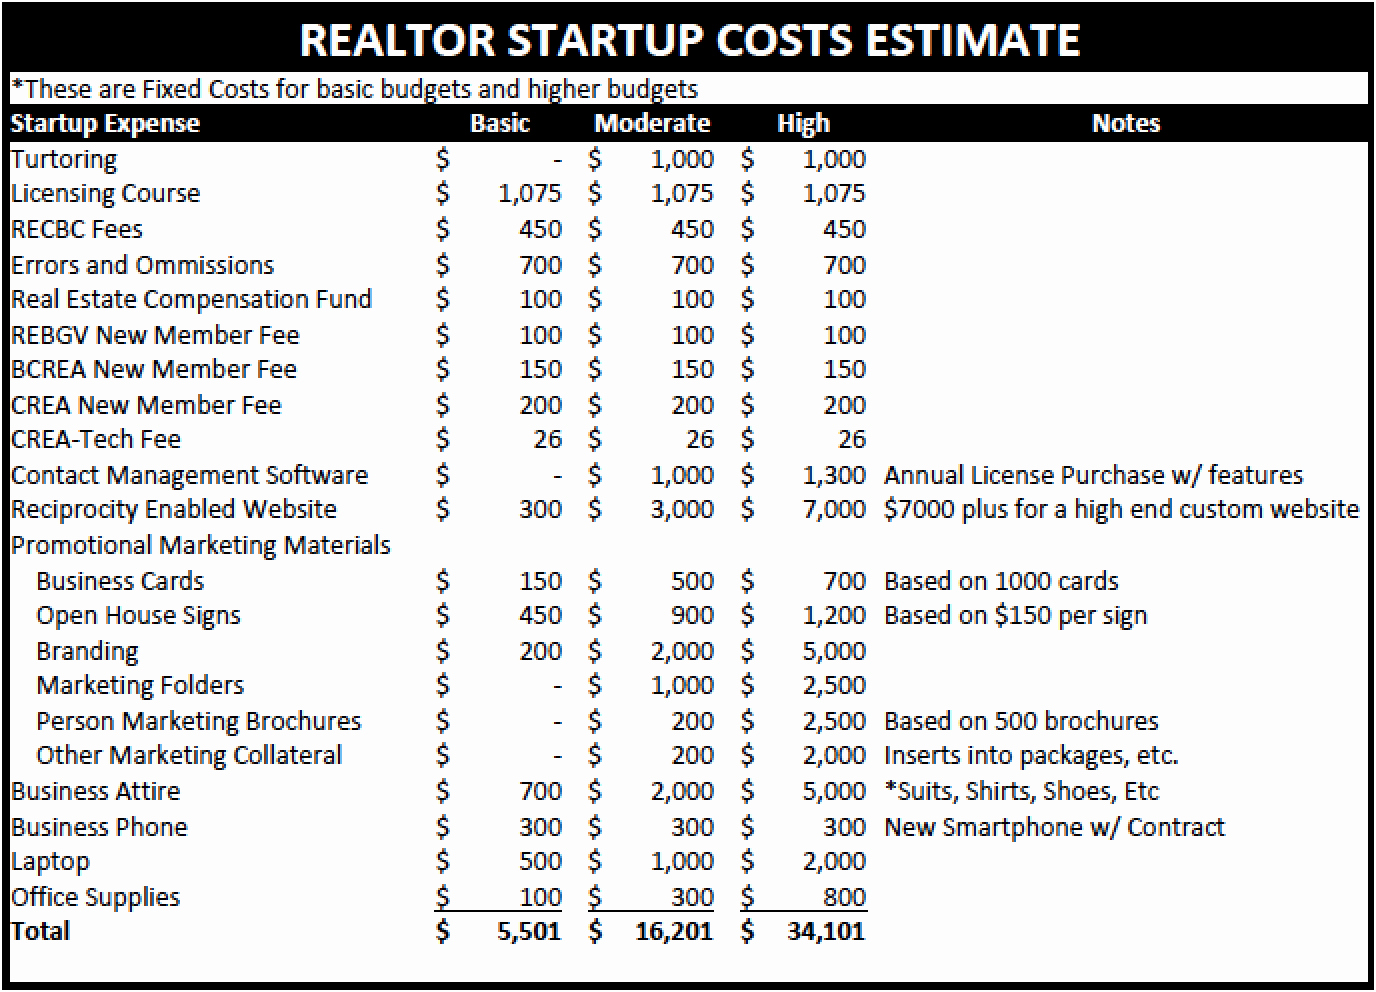 Start Up Expense Template Fresh the Costs Of Being A Realtor Startup Costs